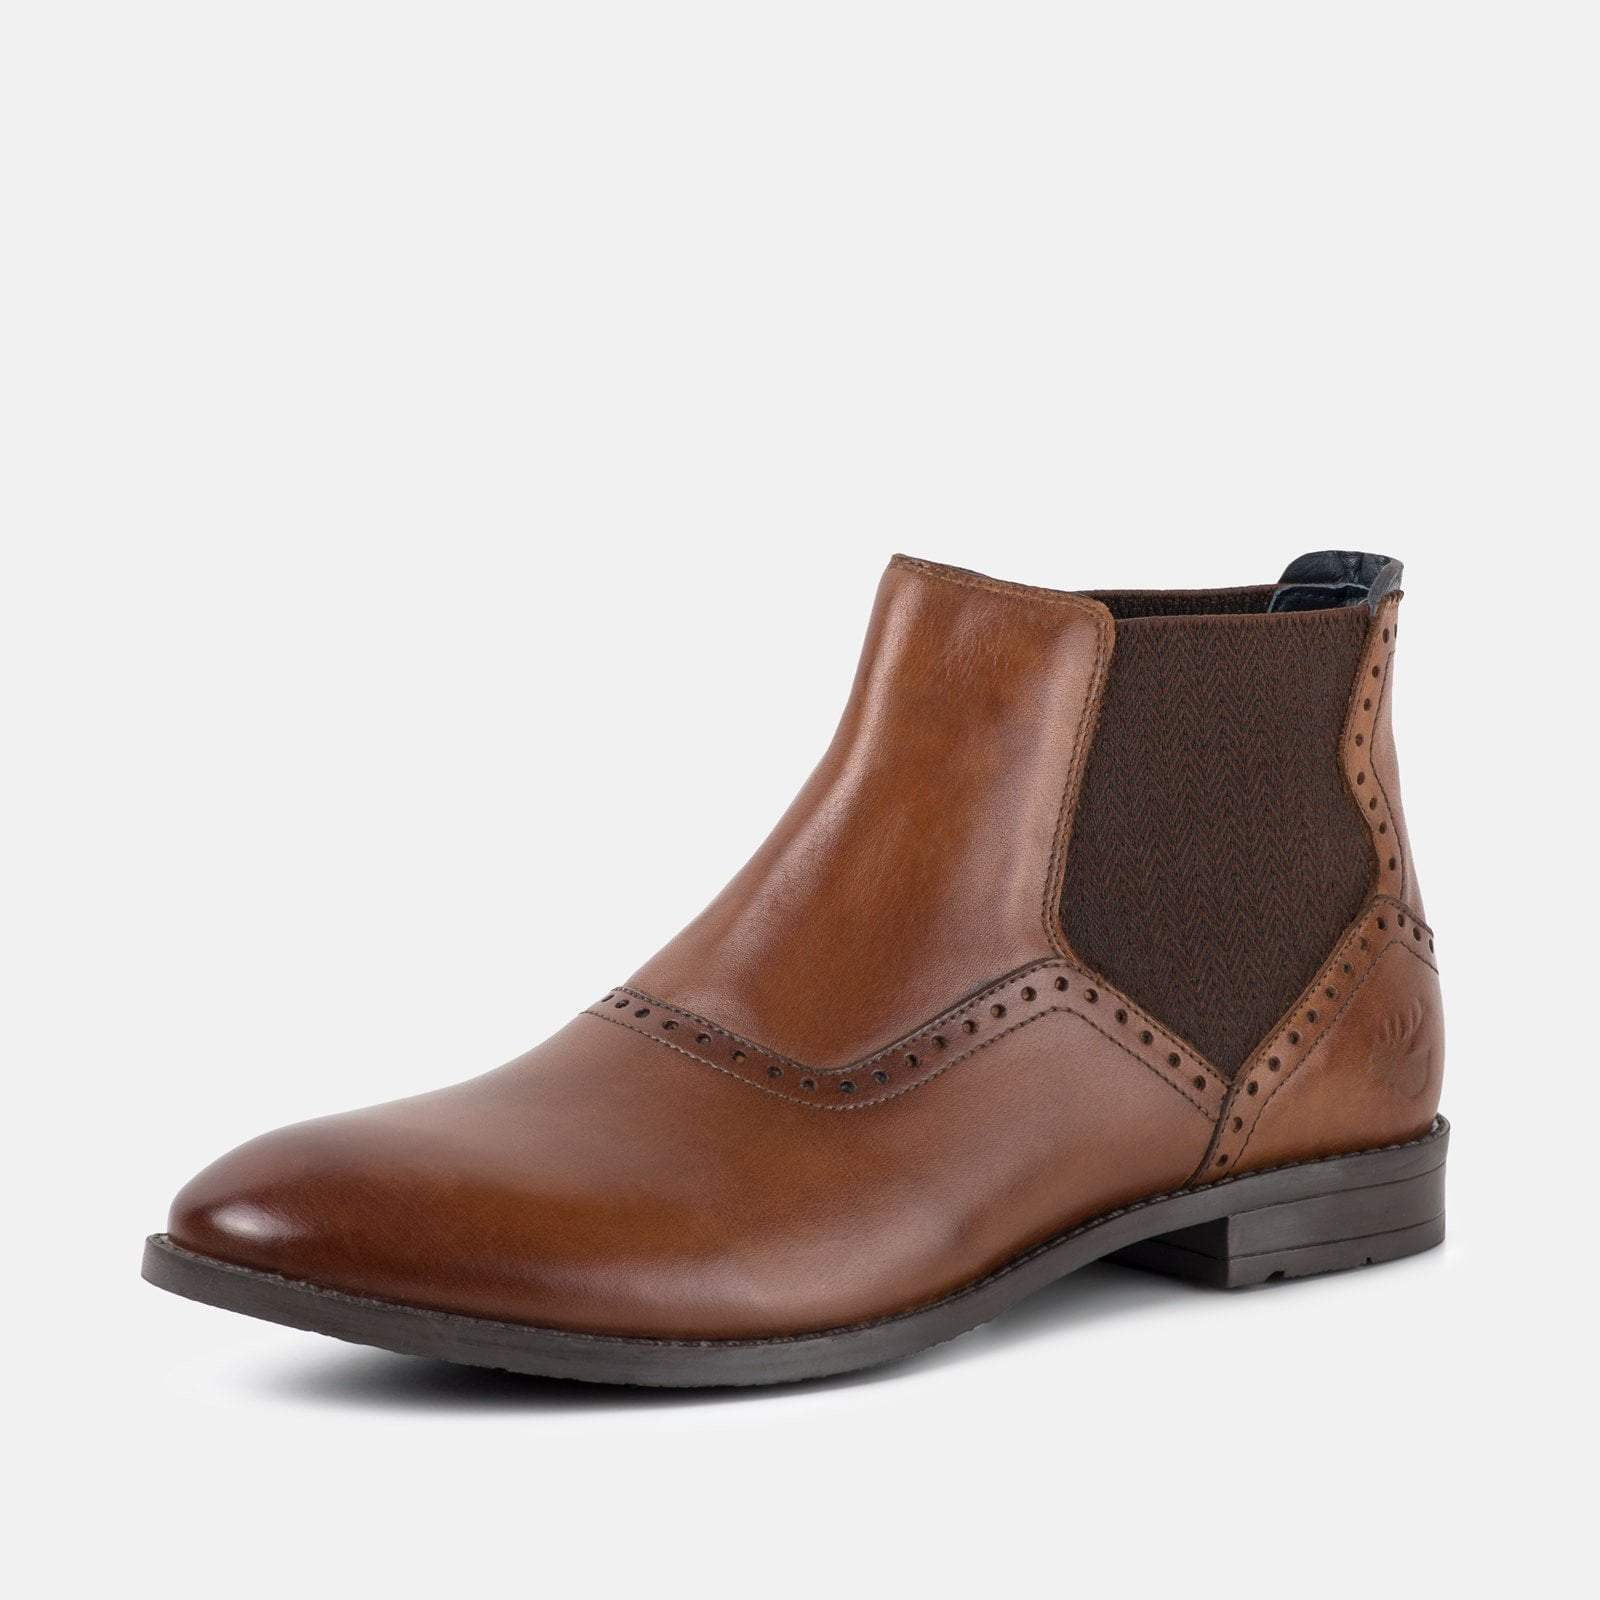 Goodwin Smith Footwear UK 6 / EURO 39 / US 7 / Tan / Leather BUCKDEN TAN